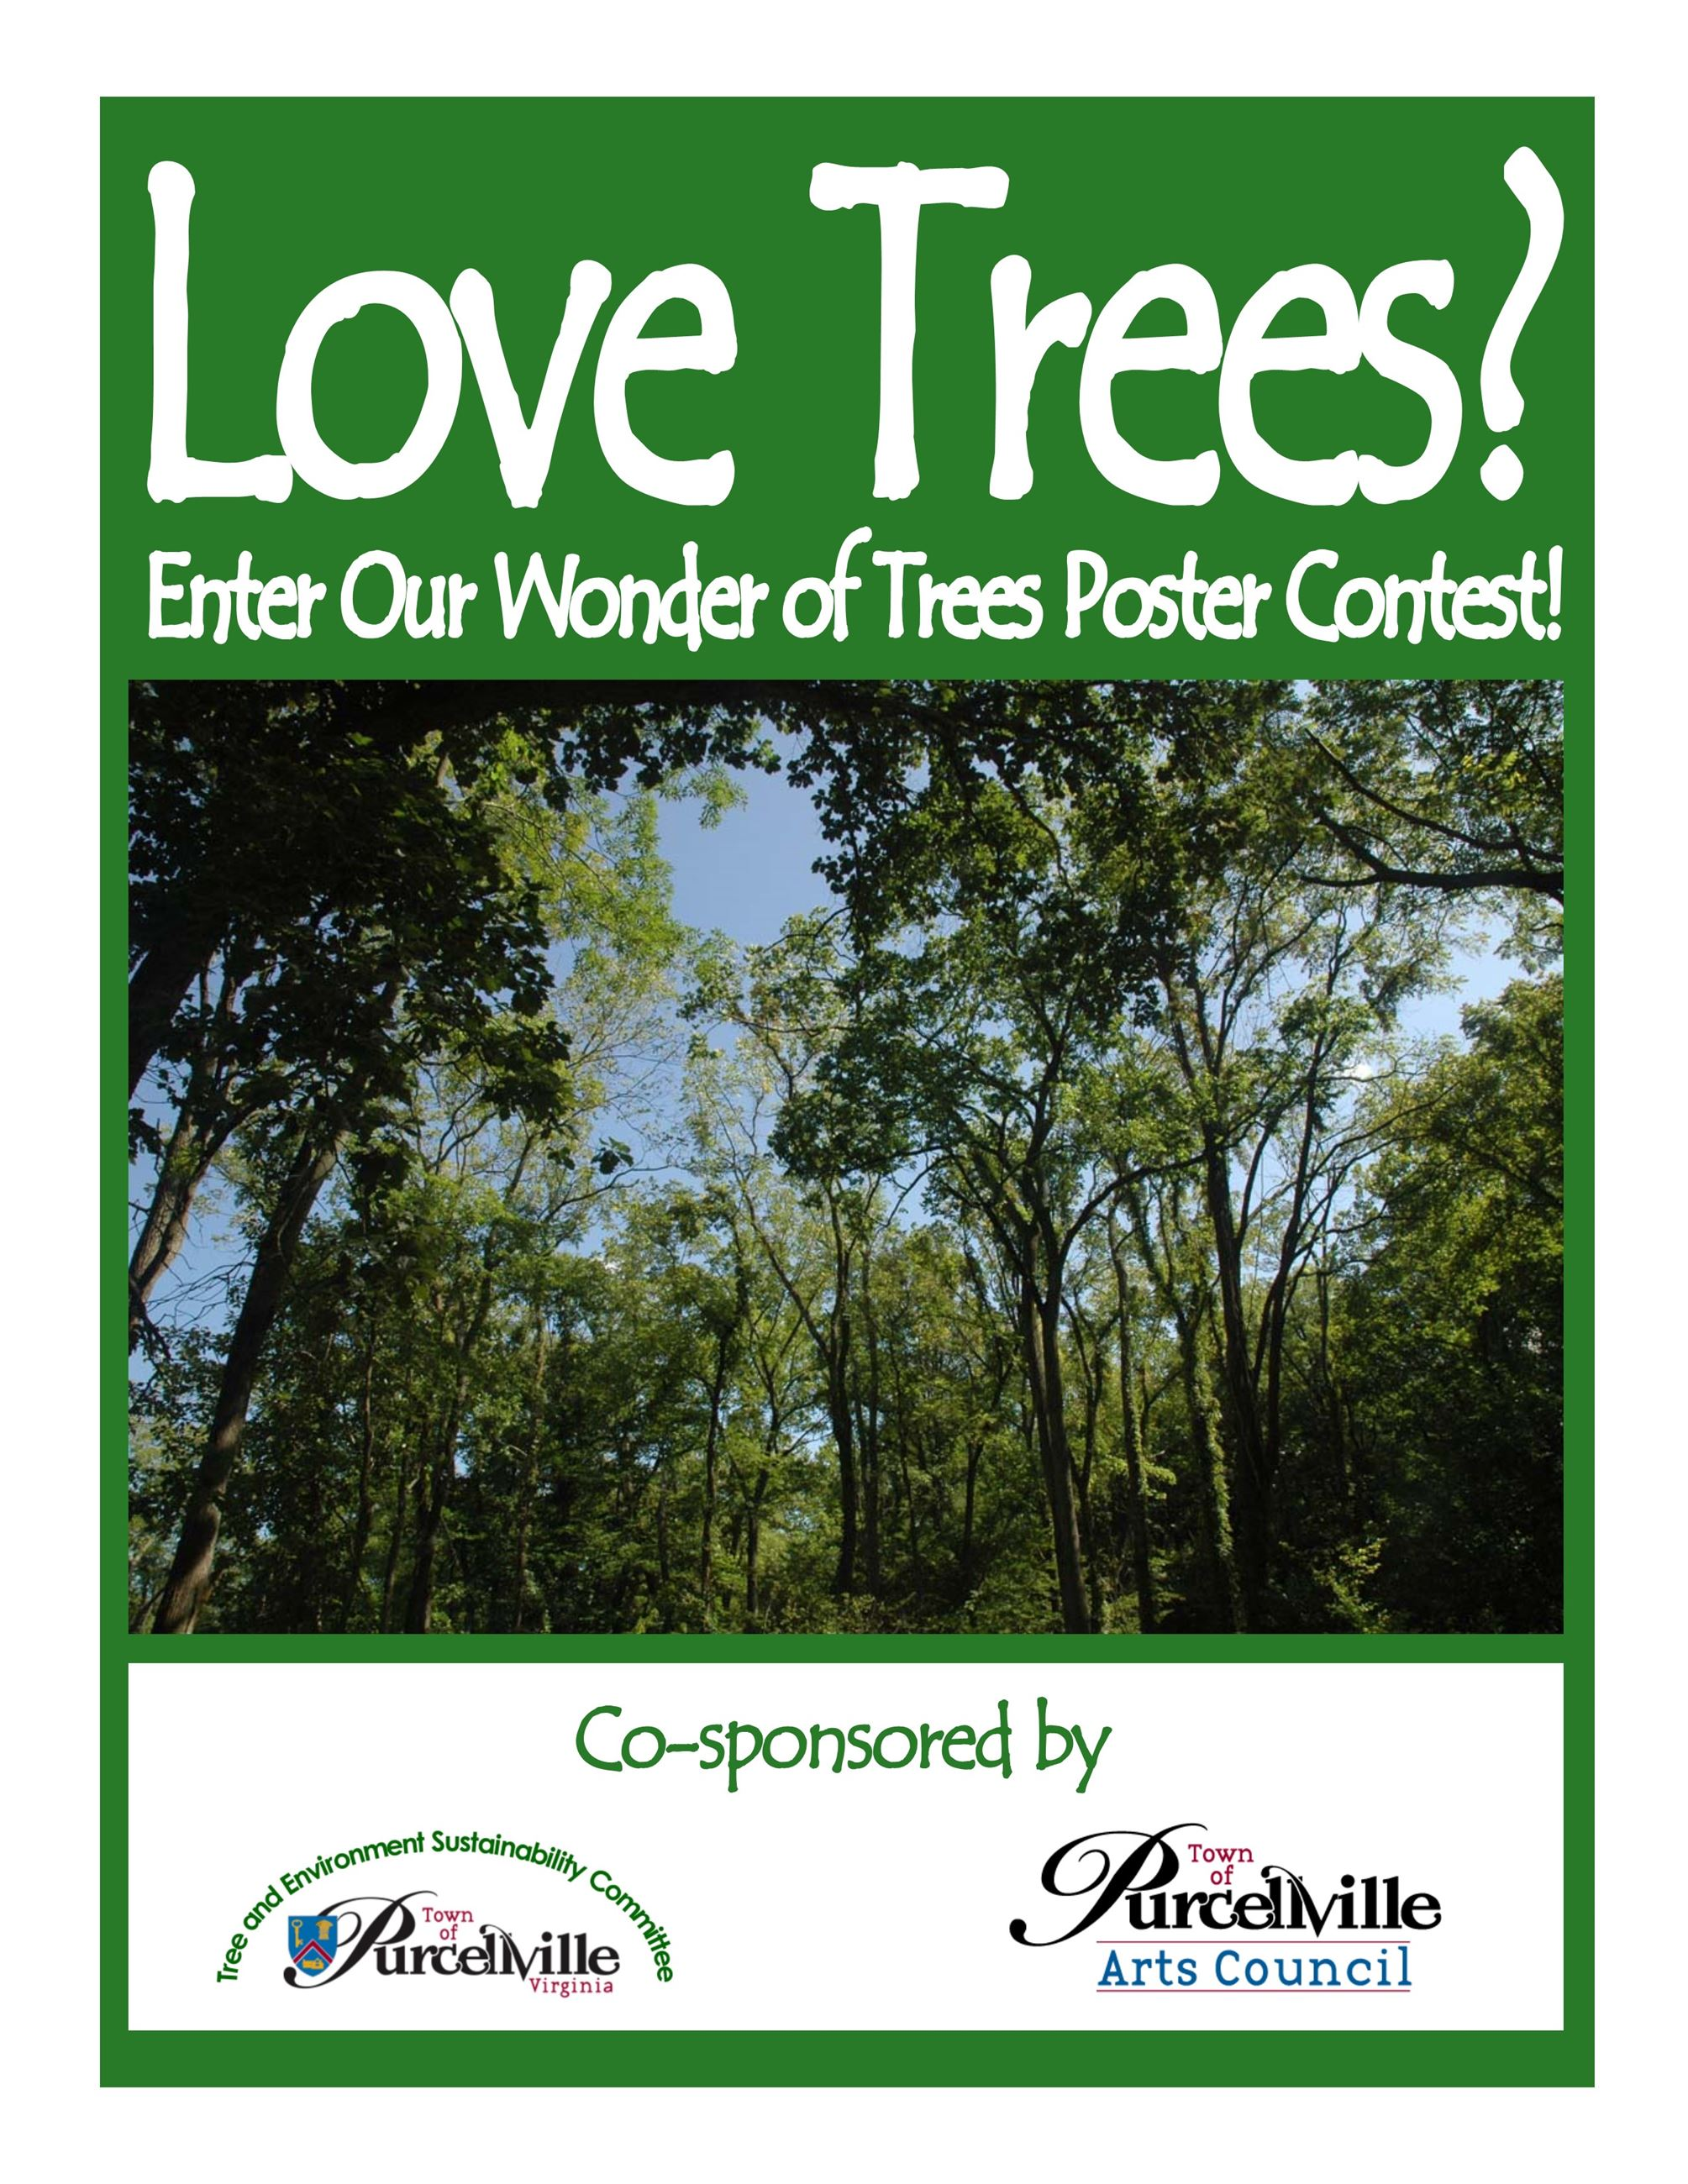 Tree Poster Contest Flyer